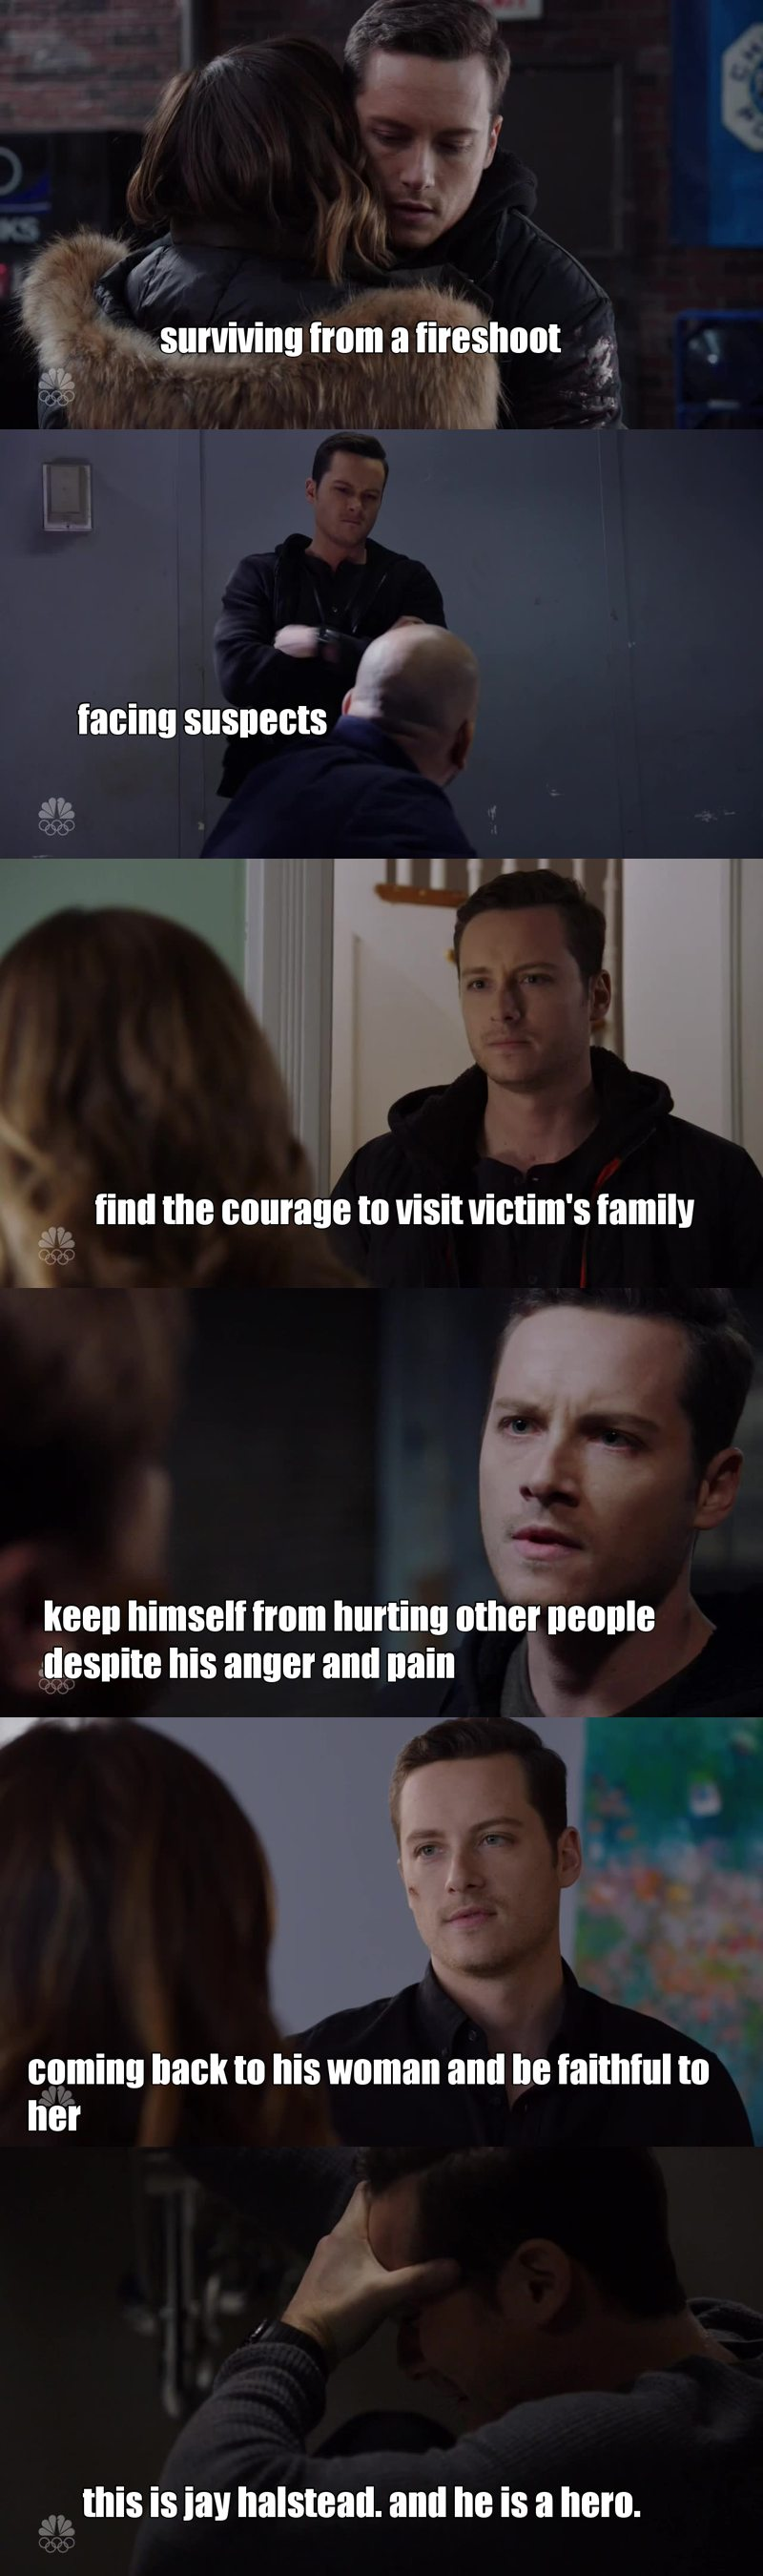 Jay's facing the same path that Erin lived with Nadia's death. Hope everything is gonna getting better for him